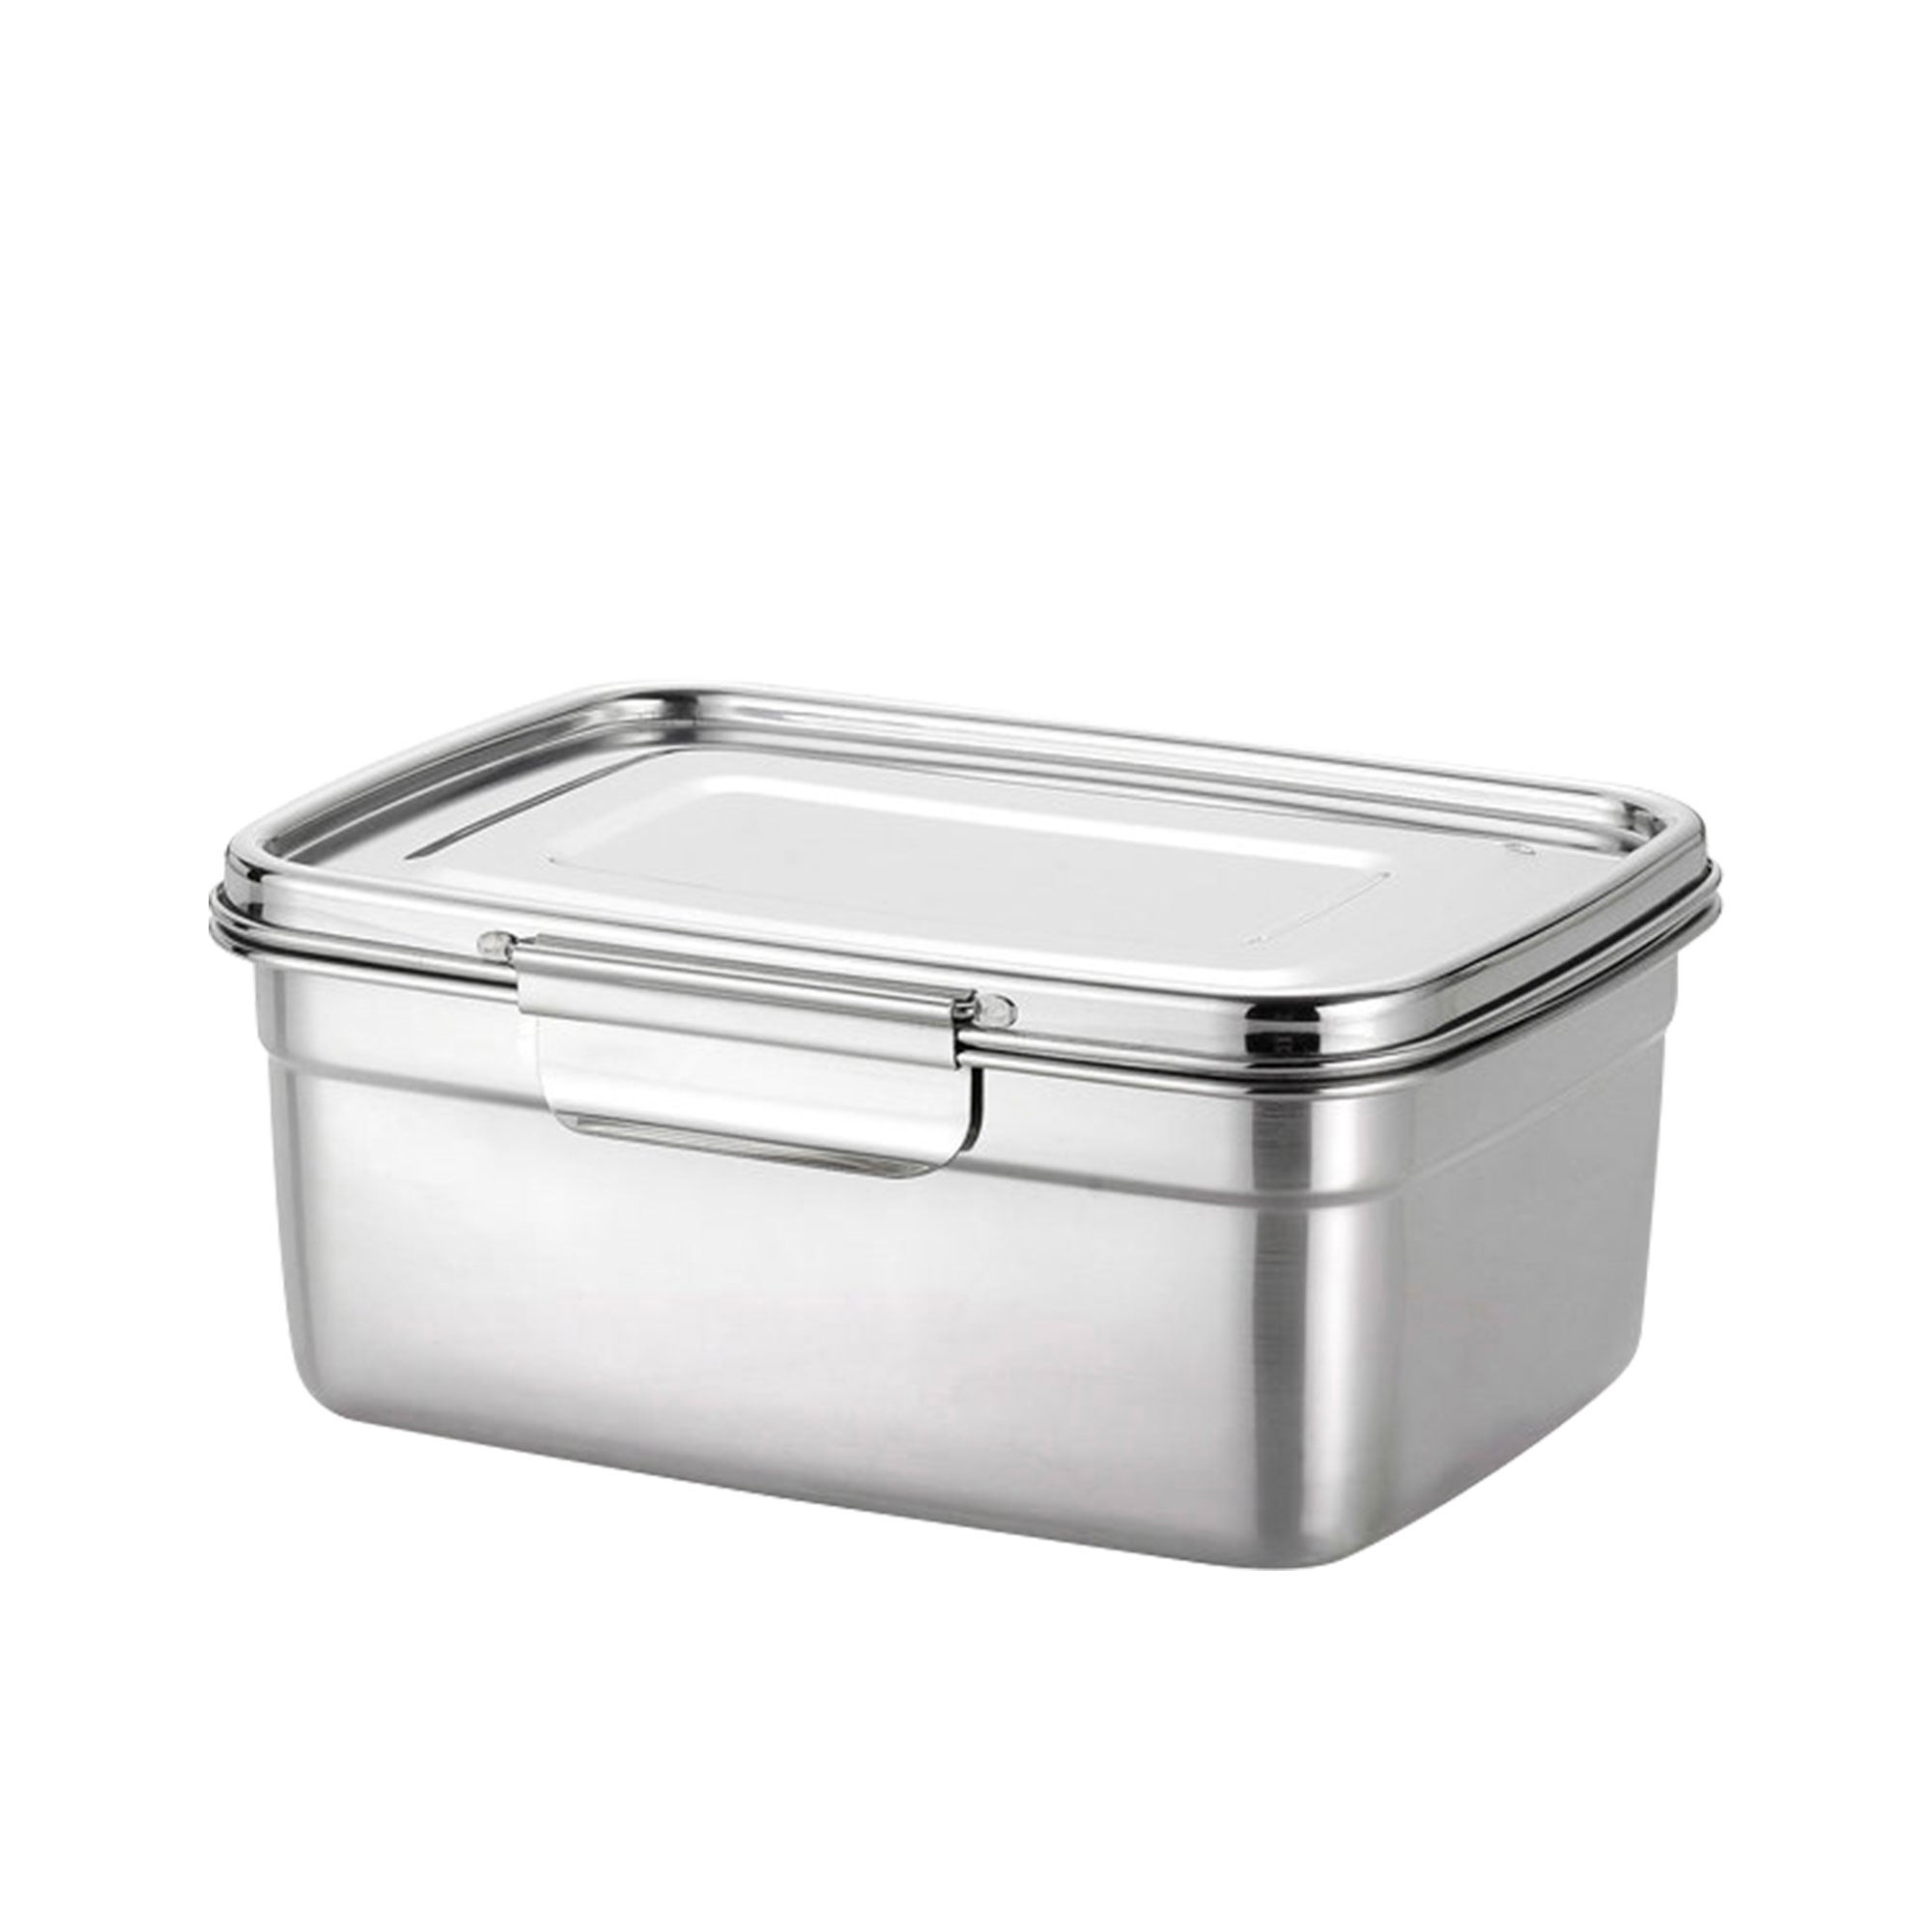 Avanti Dry Cell Stainless Steel Food Container 3.3L